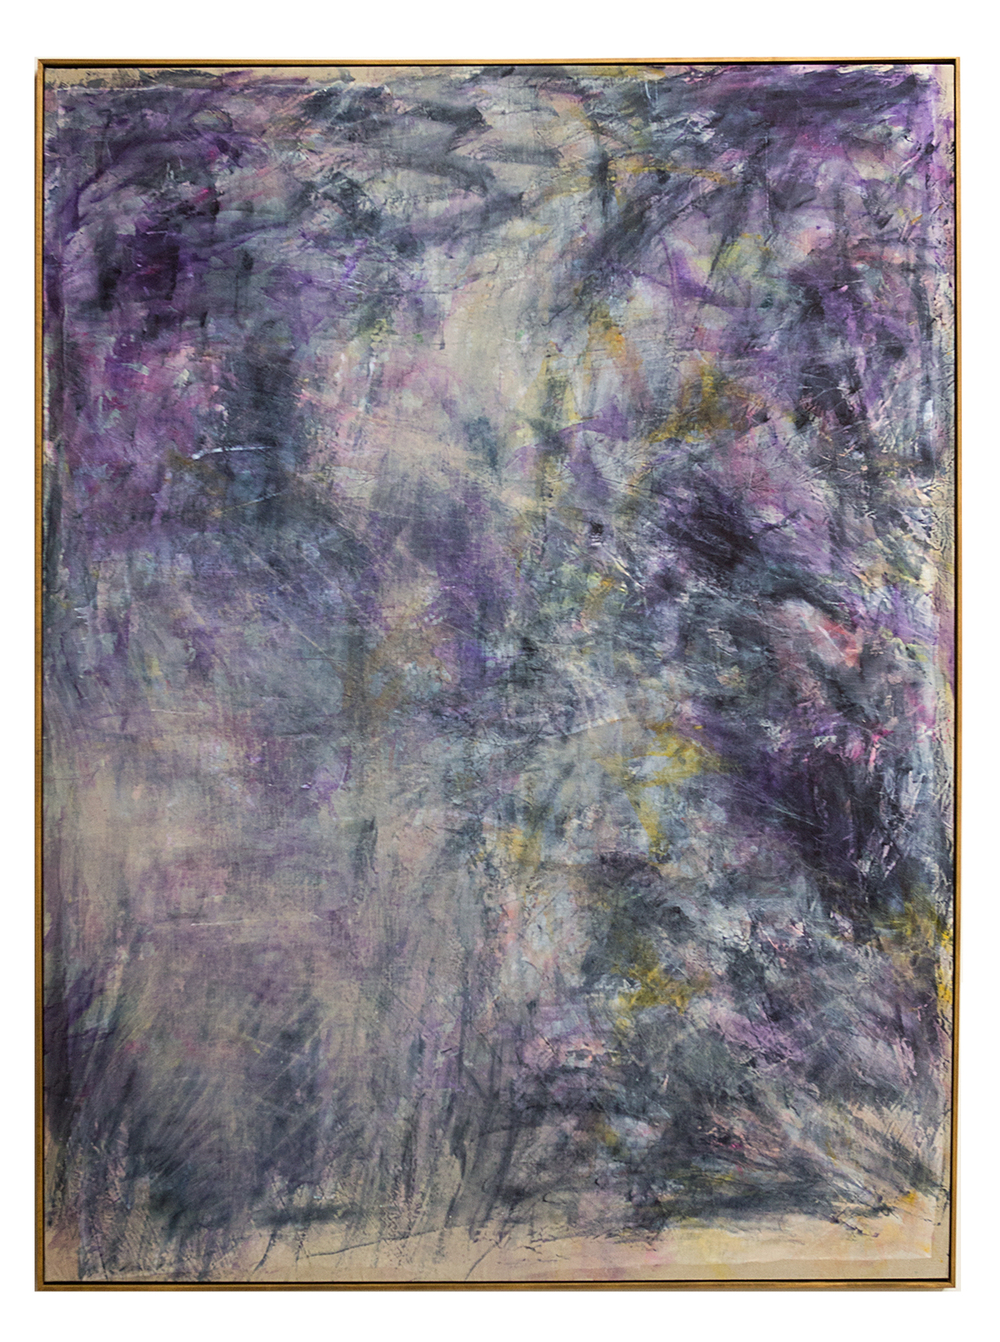 following a storm, a peaceful storm, 2015  acrylic, watercolor and saltwater on linen  96 x 72 inches (246 cm x 184 cm)